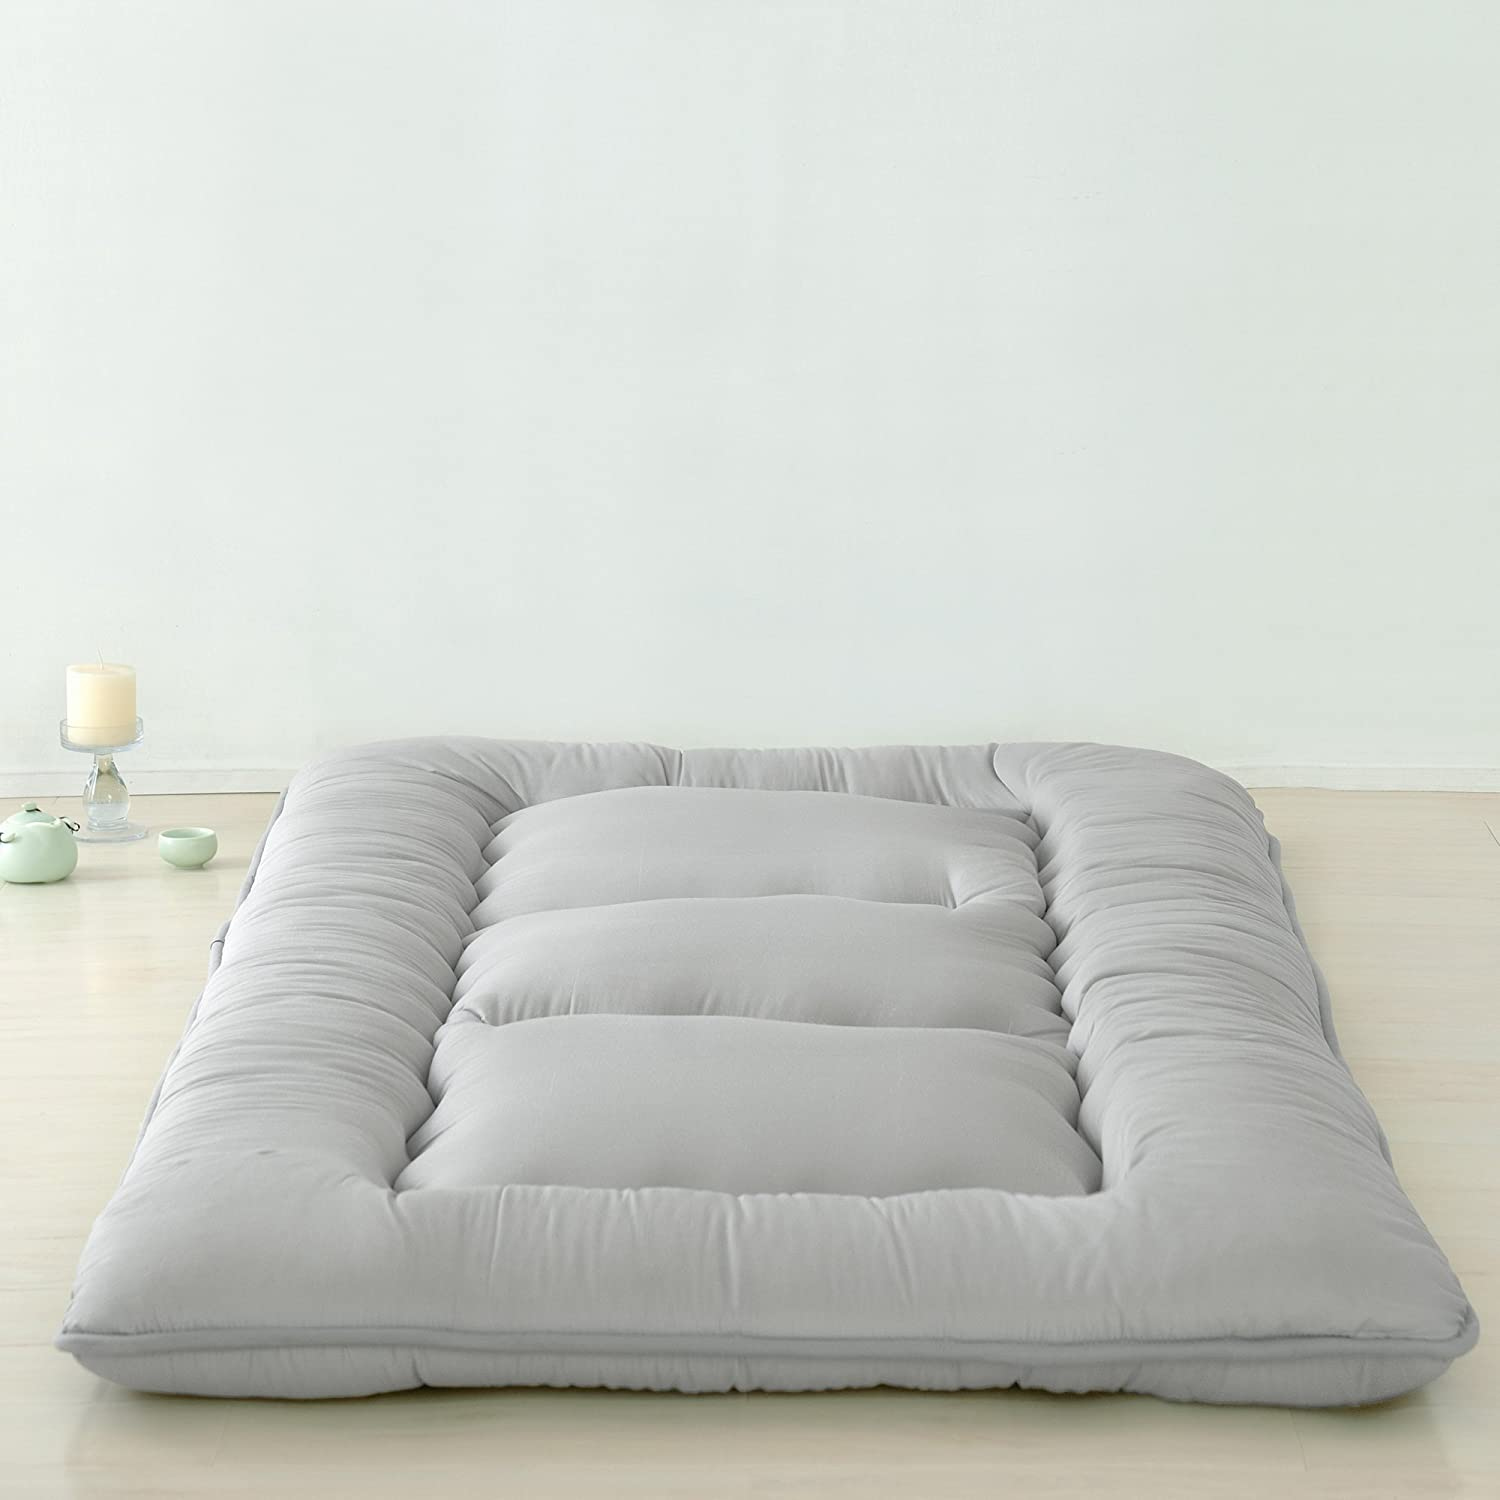 king queen the bed futon on size cheap platform japanese secret best longevity frame of